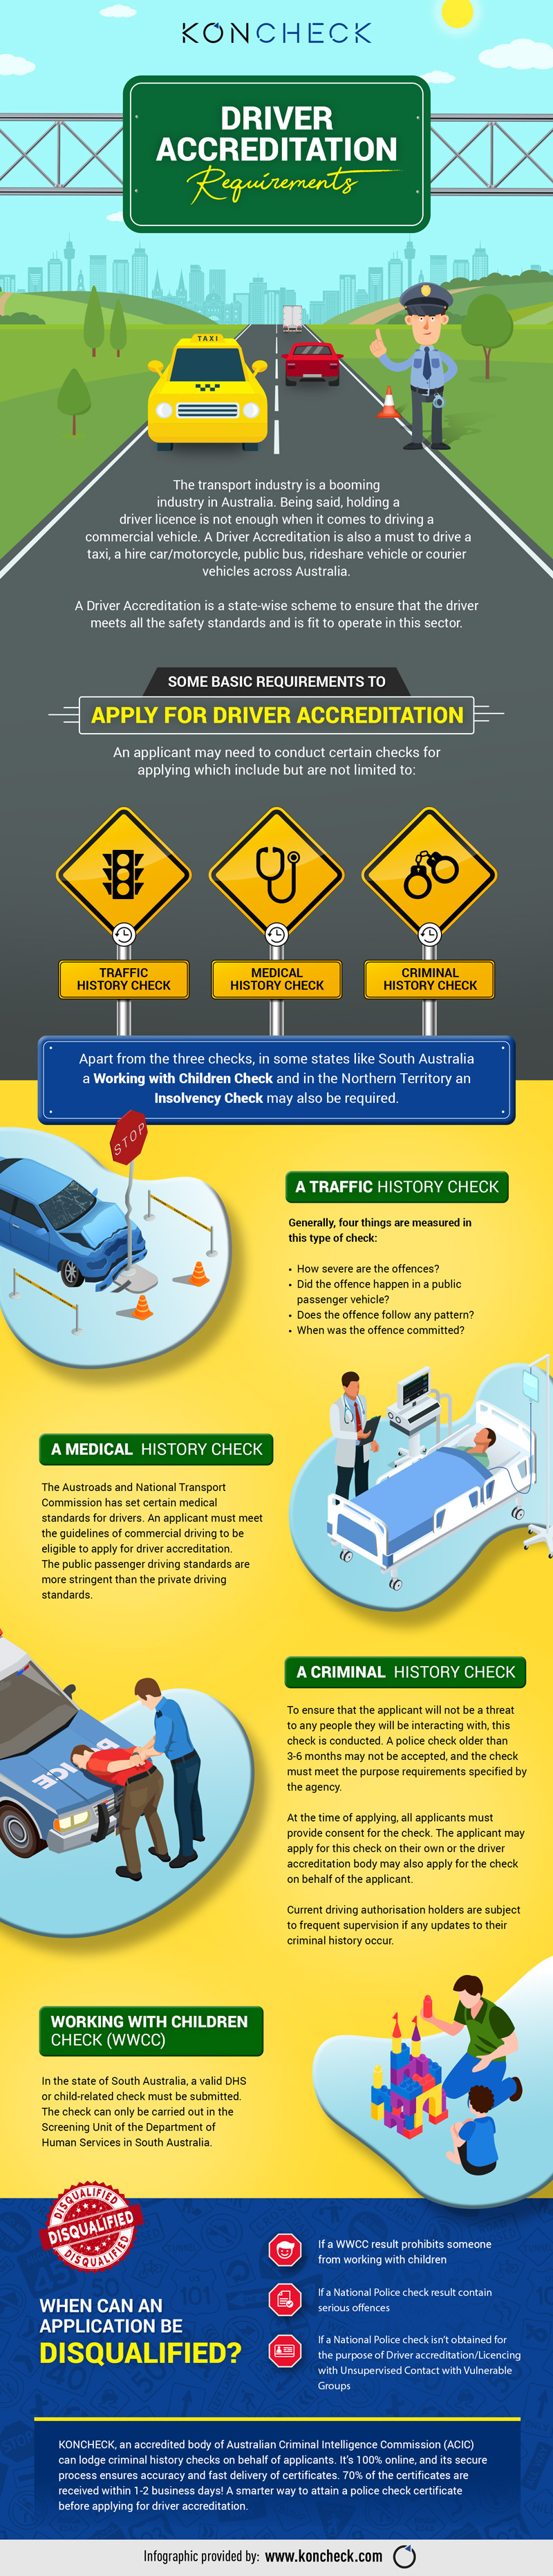 Driver Accreditation Requirements #infographic